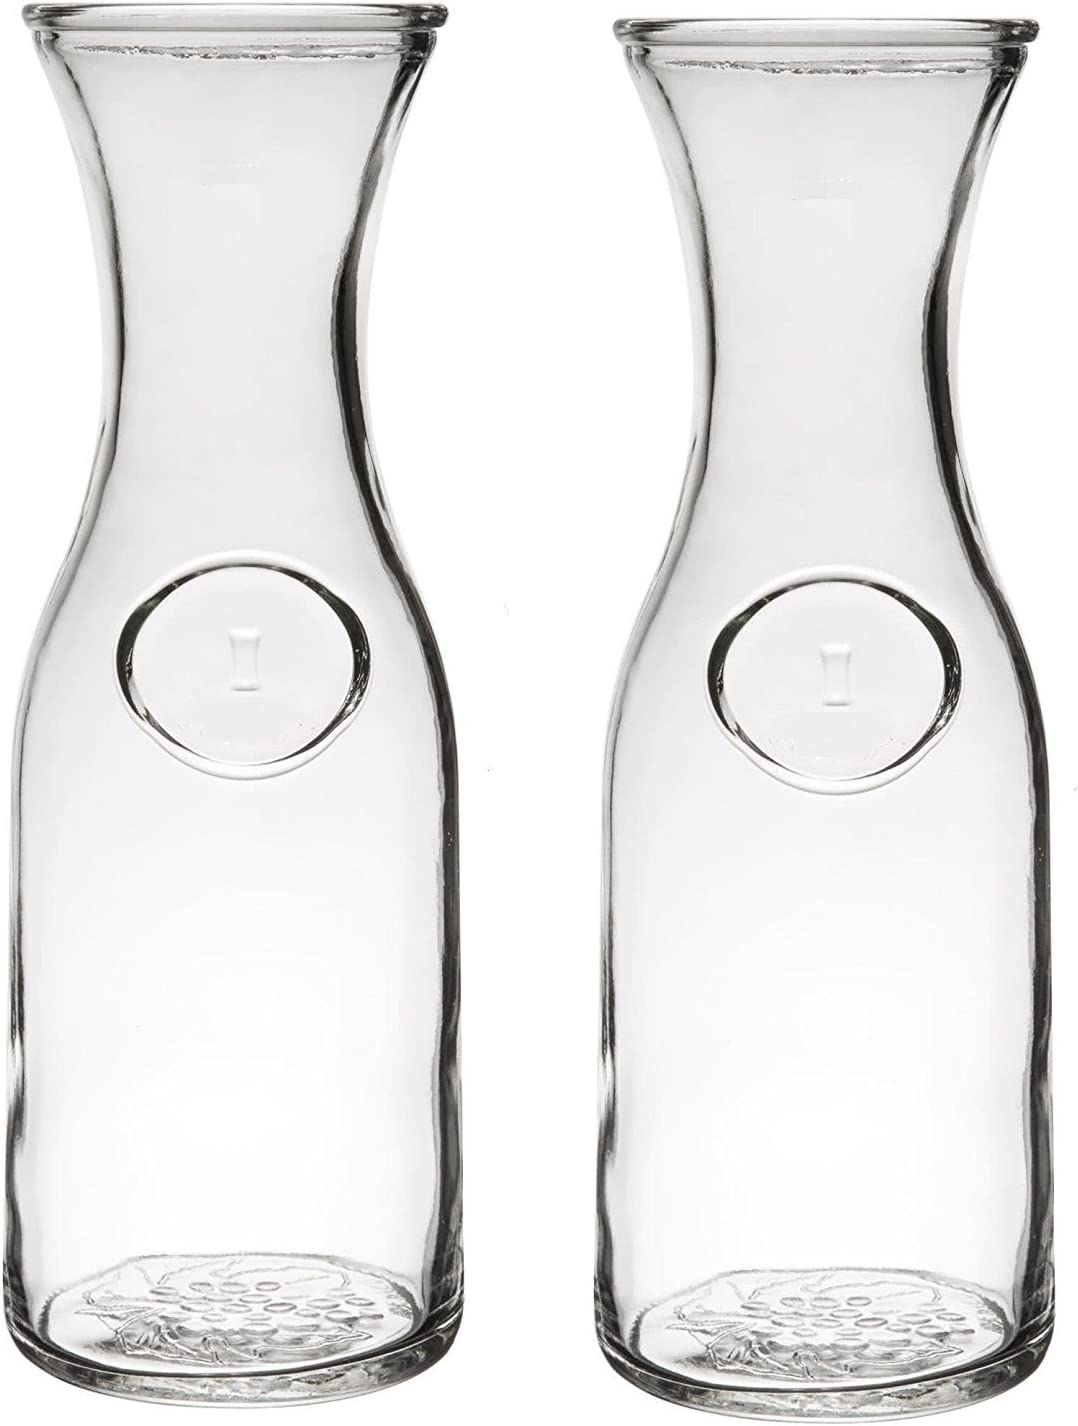 Glass Water or Wine Carafe - 1 Liter (2)